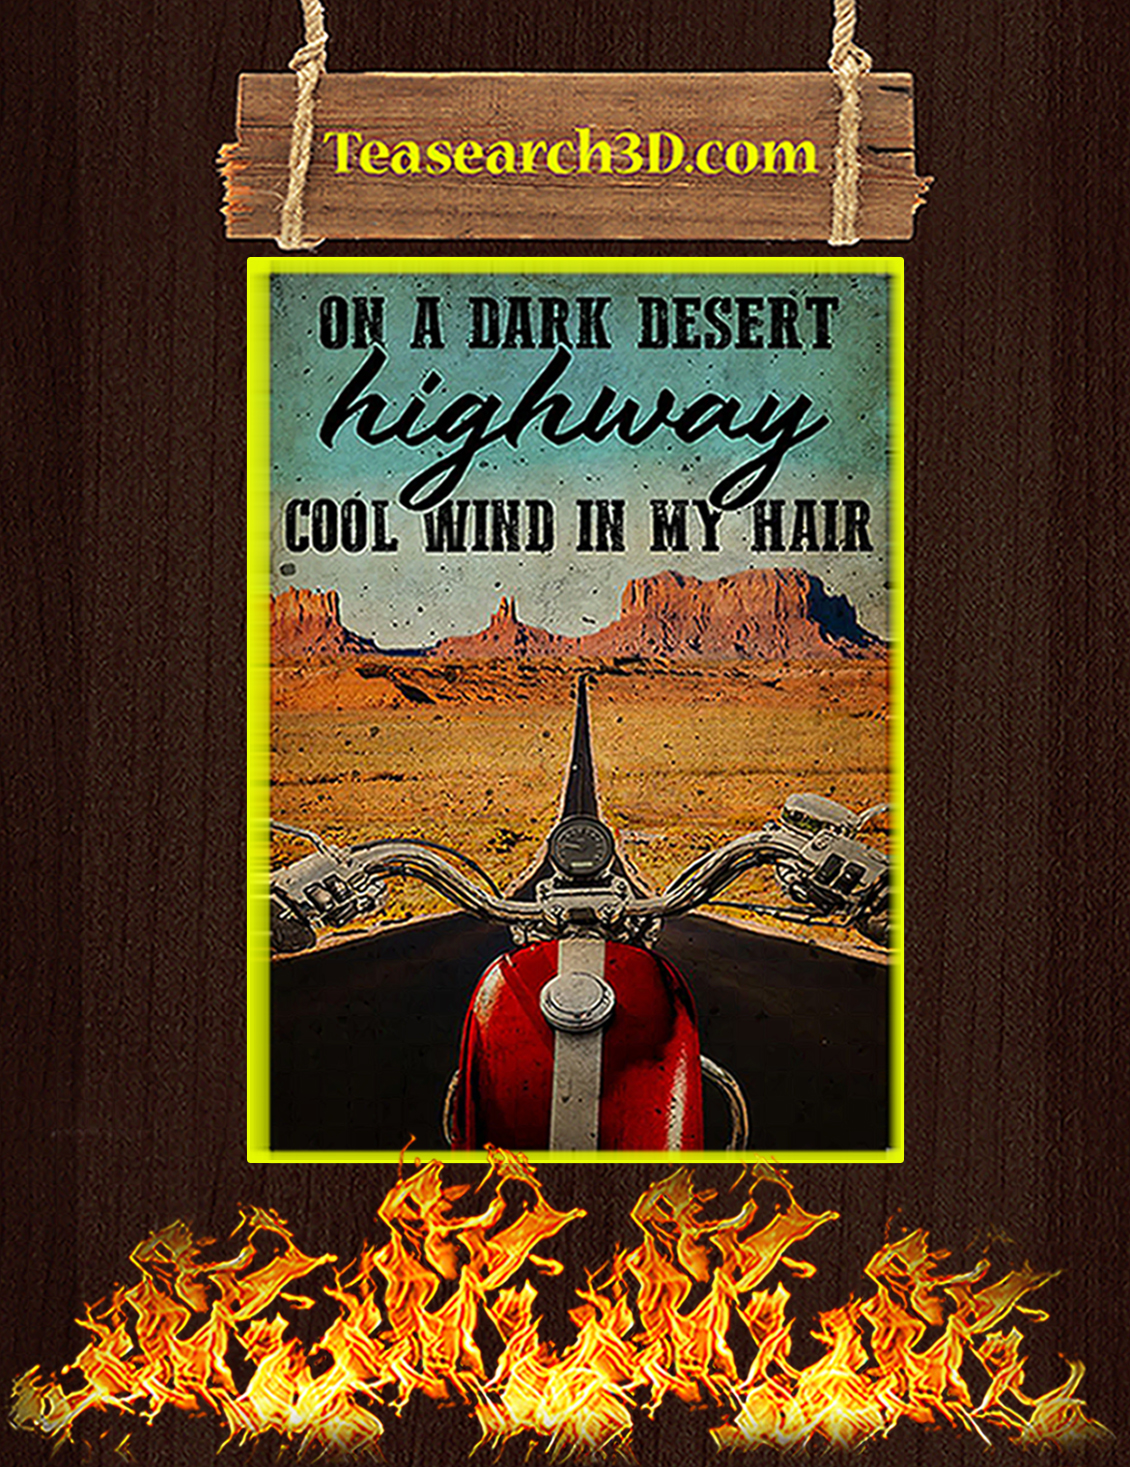 Biker on a dark desert highway cool wind in my hair poster A3